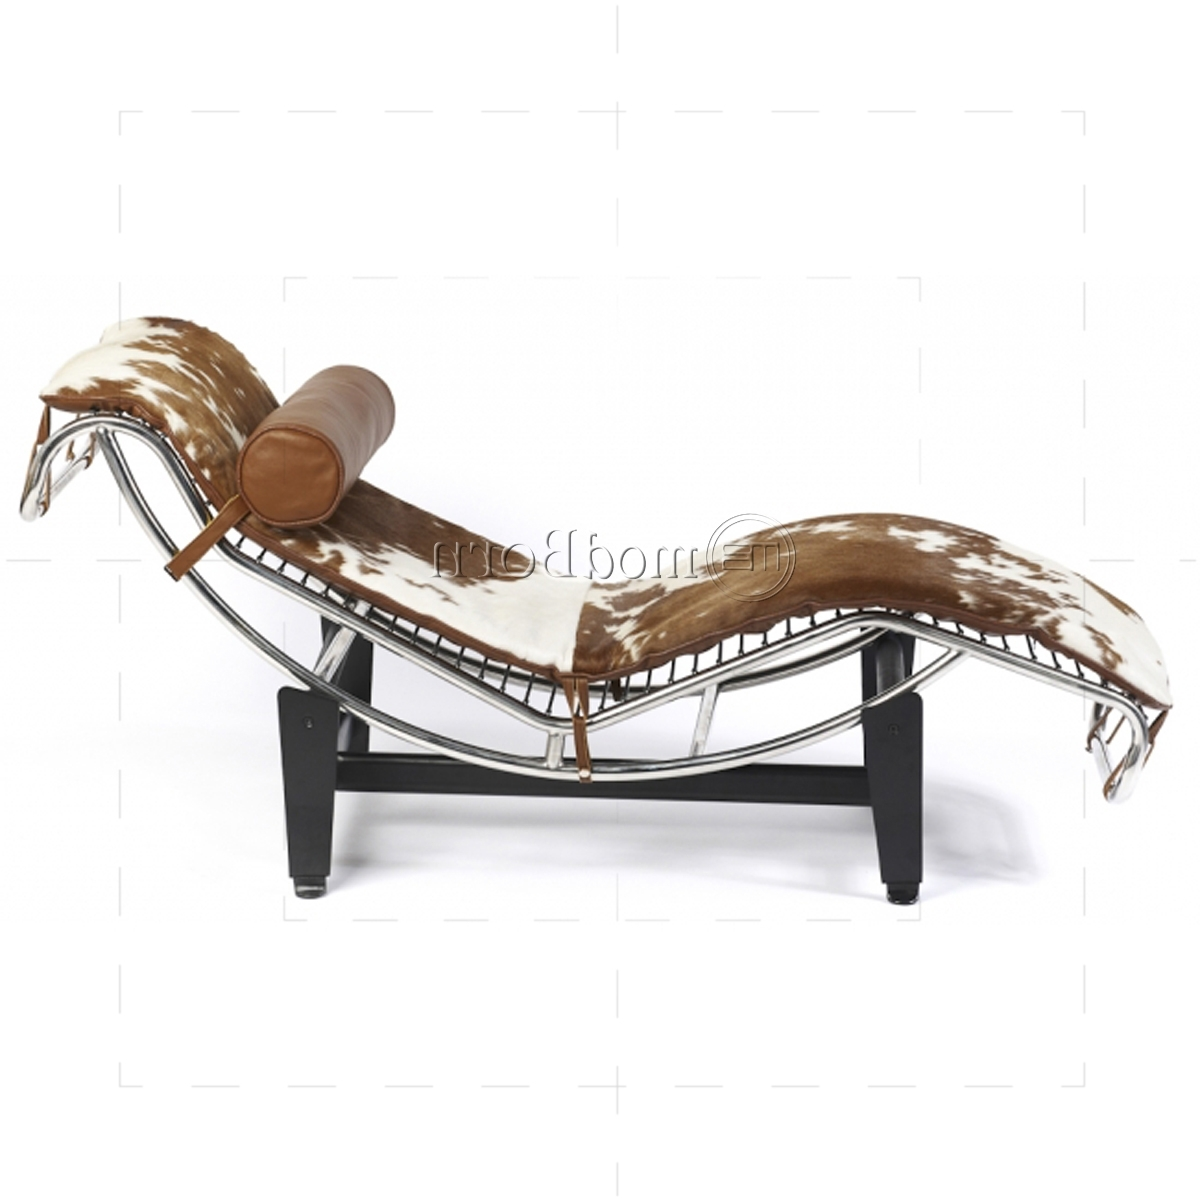 Trendy Corbusier Style Lc4 Chaise Longue Pony Leather – Replica Intended For Brown Chaise Lounge Chair By Le Corbusier (View 14 of 15)